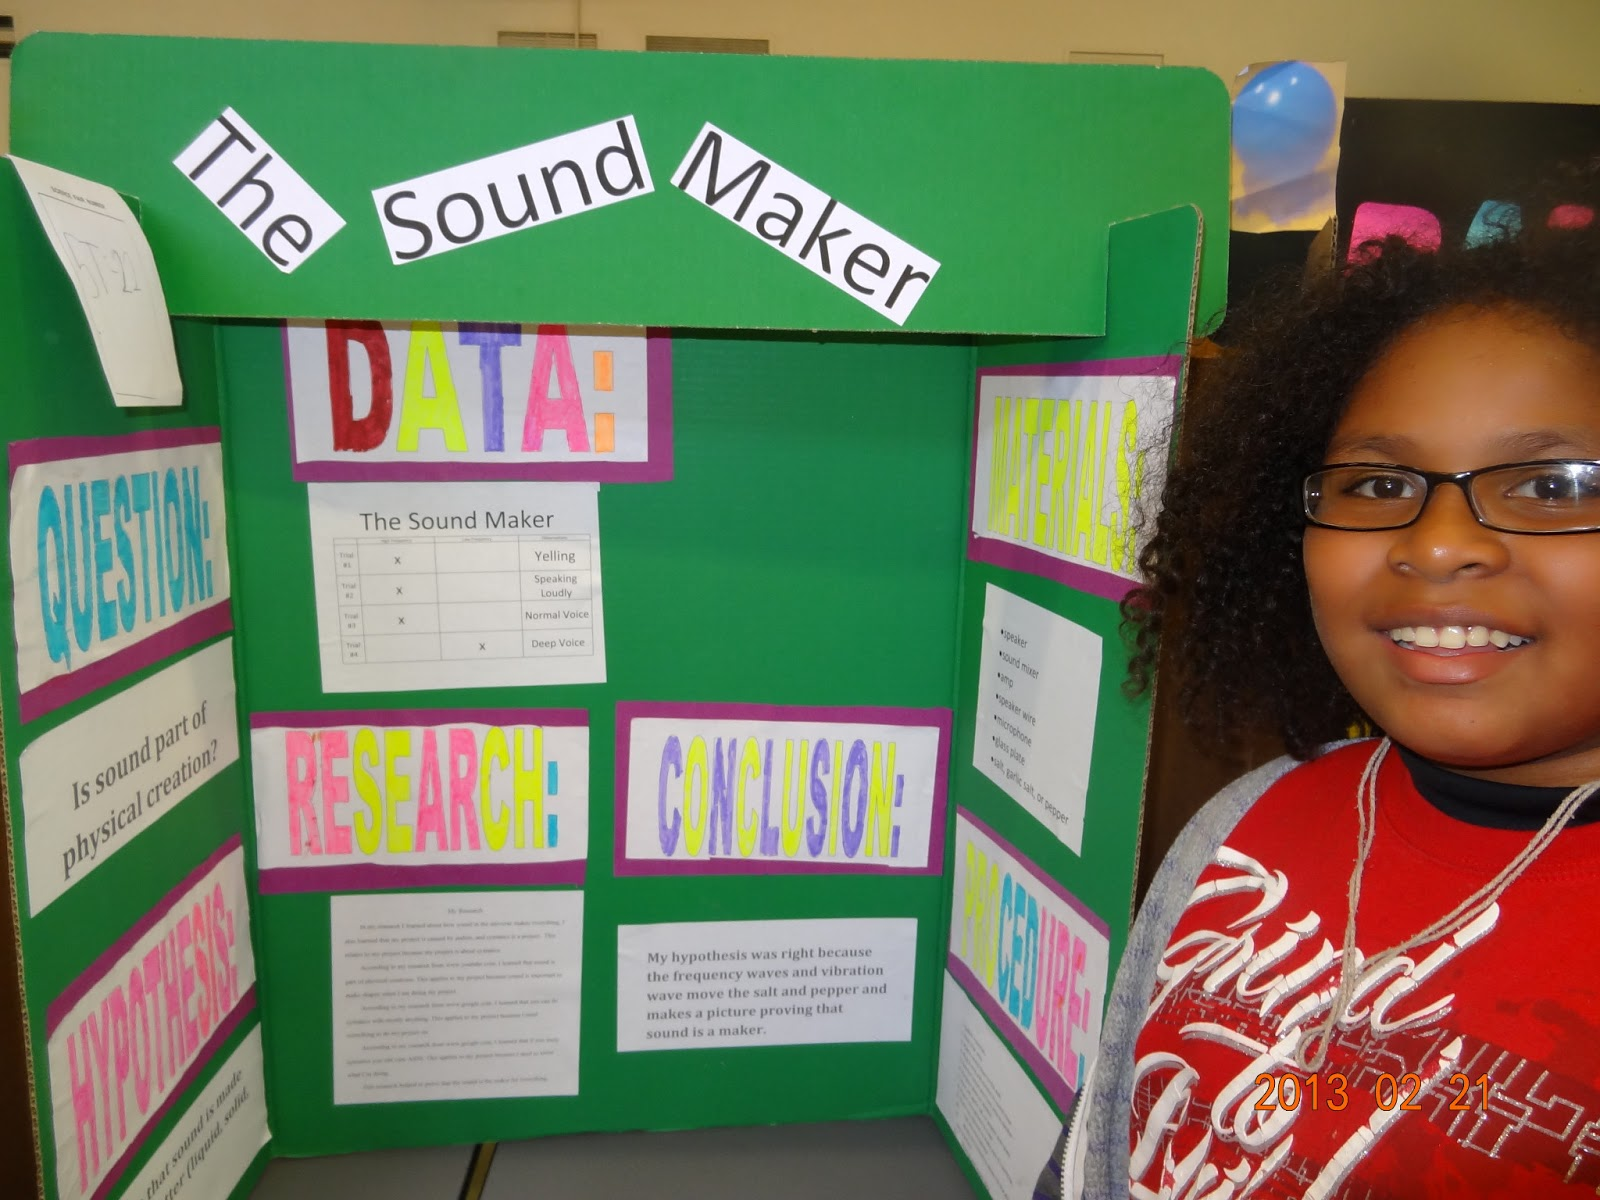 4th grade science fair projects topics A high percentage of a student's grade may depend on a single project--the science fair project therefore, careful consideration must be given as to what type of project is suitable for a fourth grader to attempt.